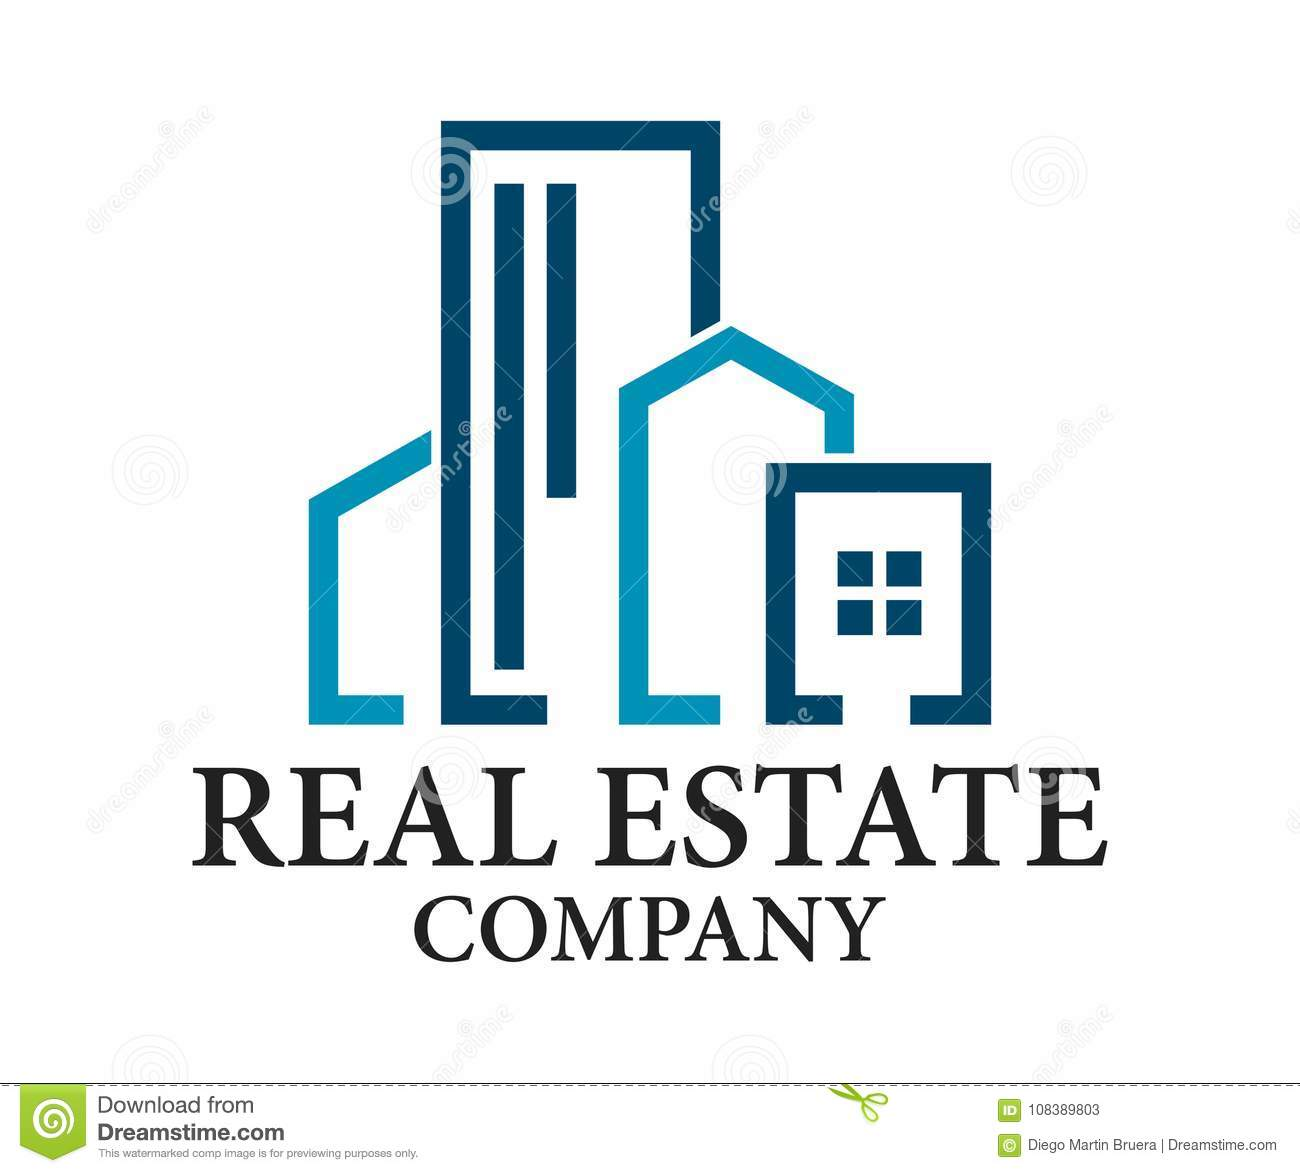 Real Estate, Gebäude, Bau und Architektur Logo Vector Design